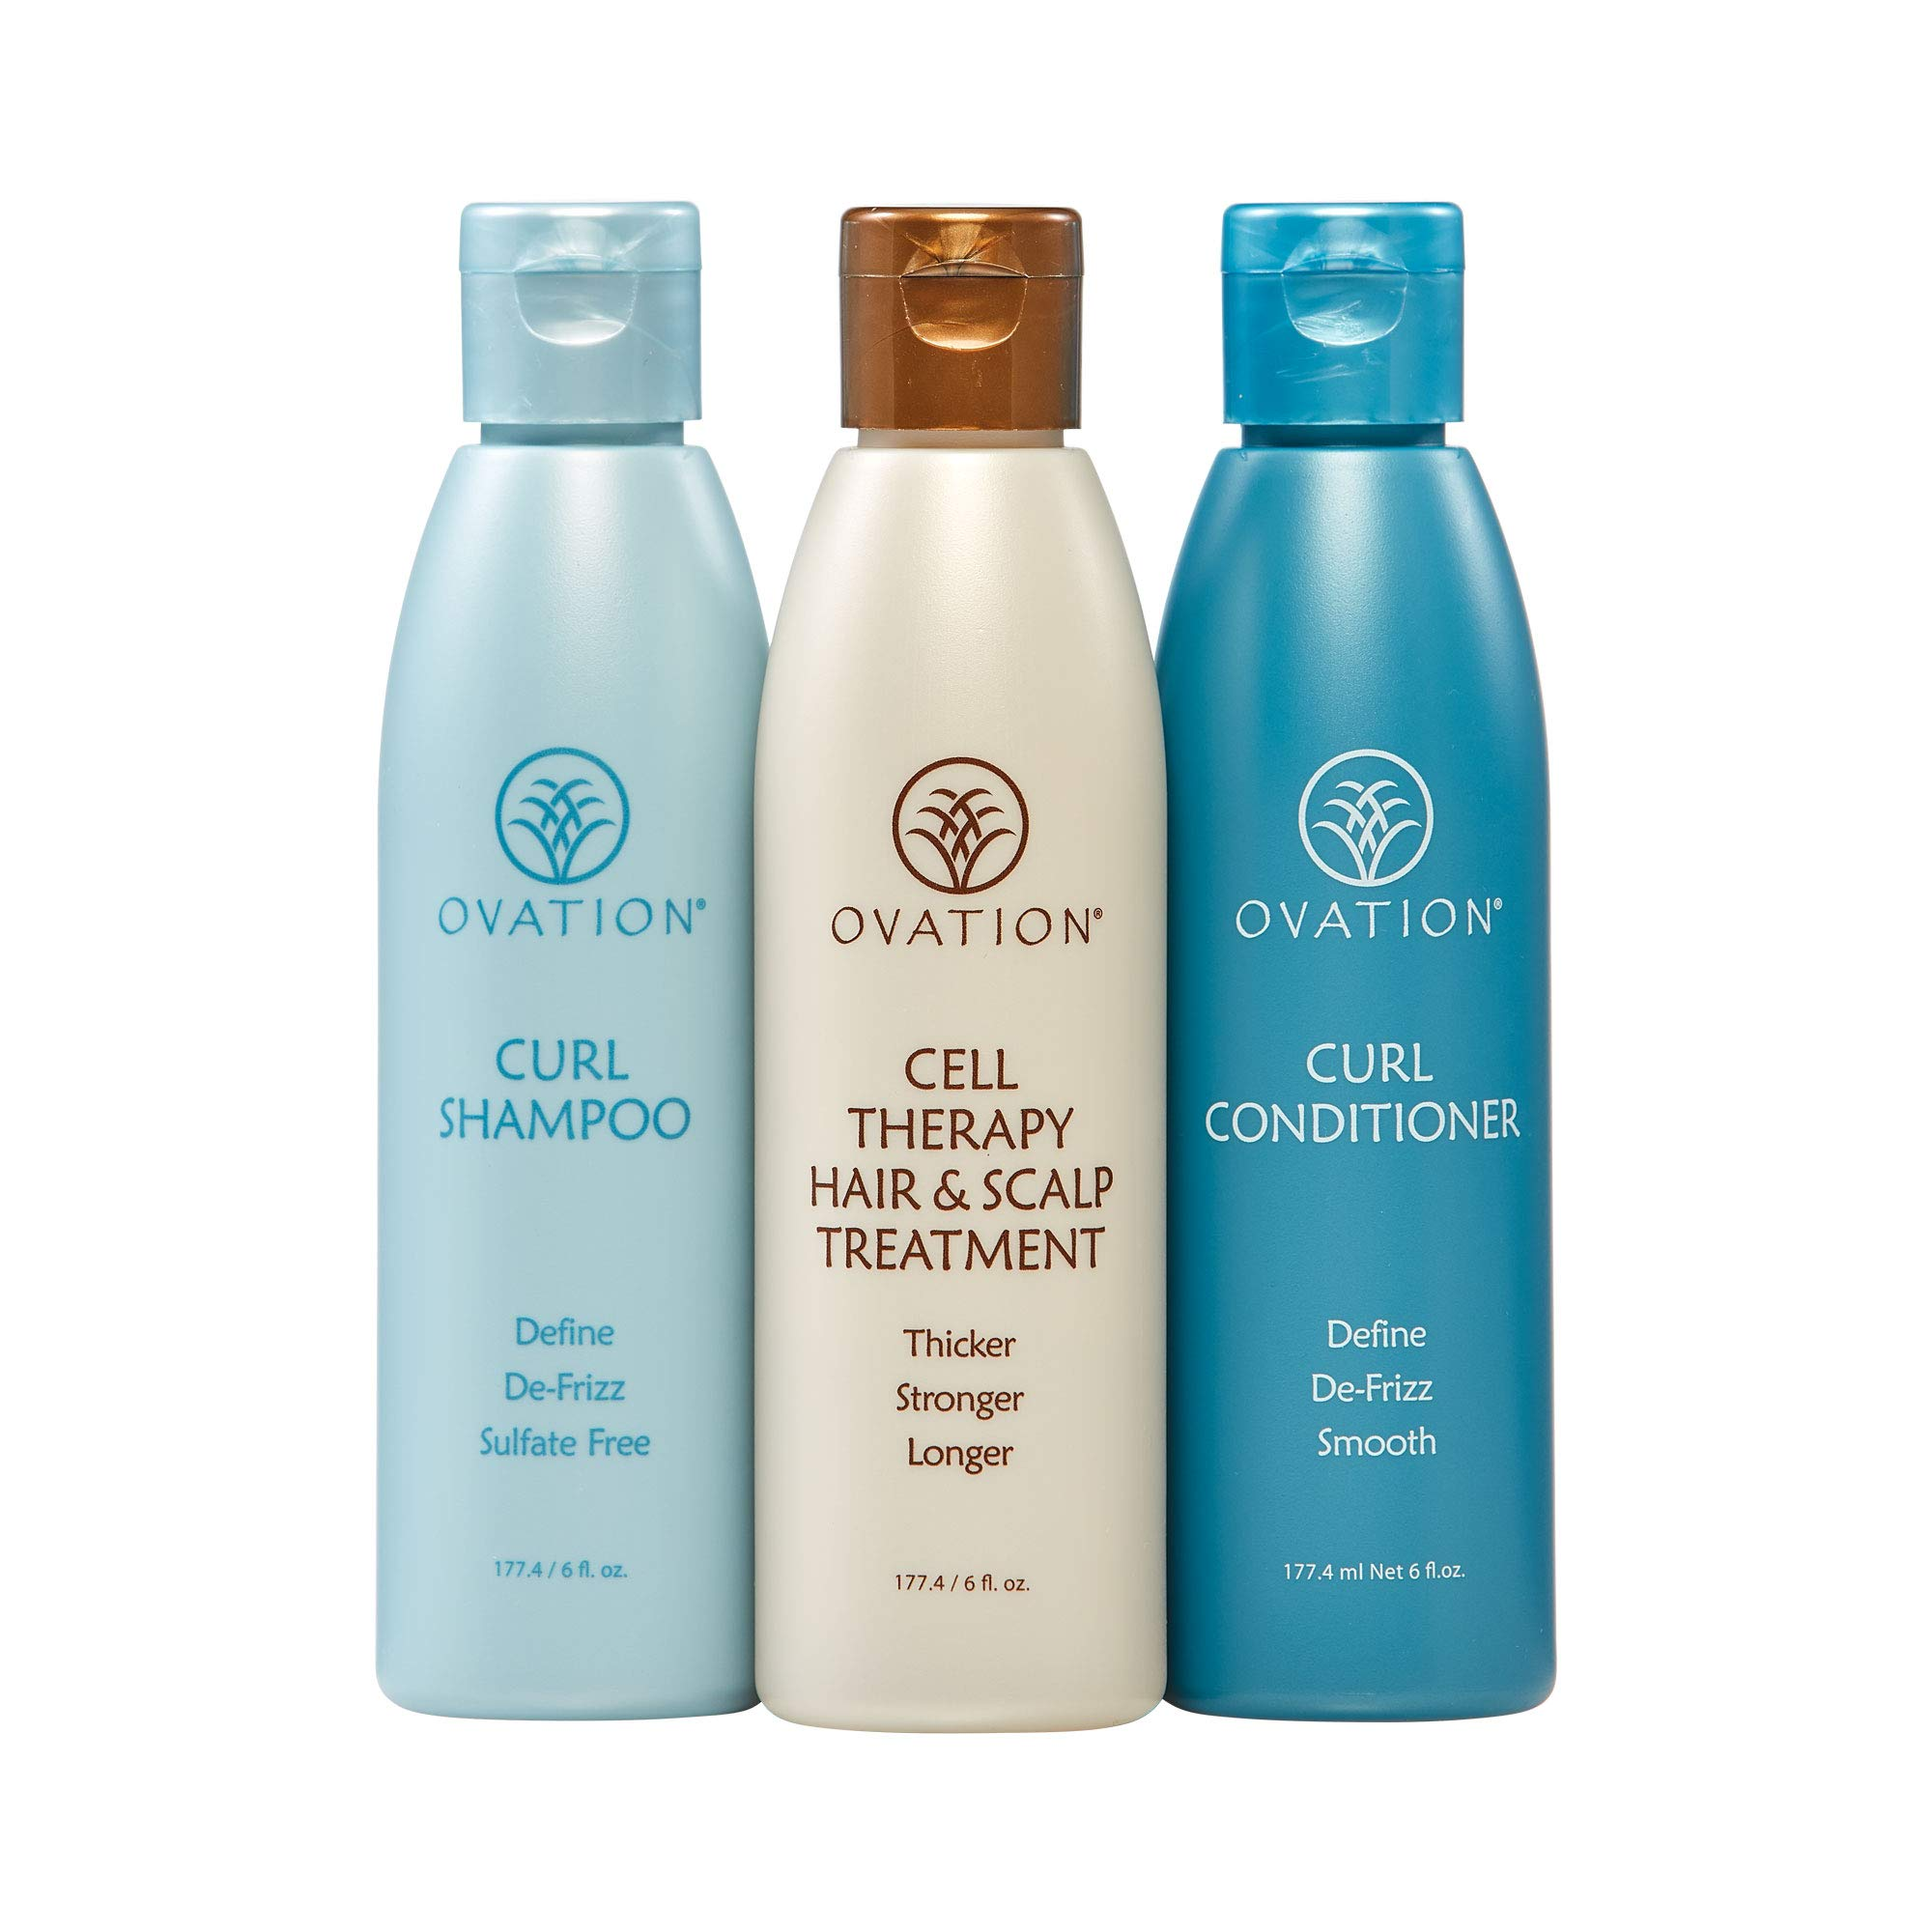 Ovation Curl Cell Therapy System - Salon Quality - Get Stronger, Fuller & Healthier Looking Hair with Natural Ingredients. Includes Curl Therapy Treatment Shampoo and Curl Conditioner by Ovation Hair